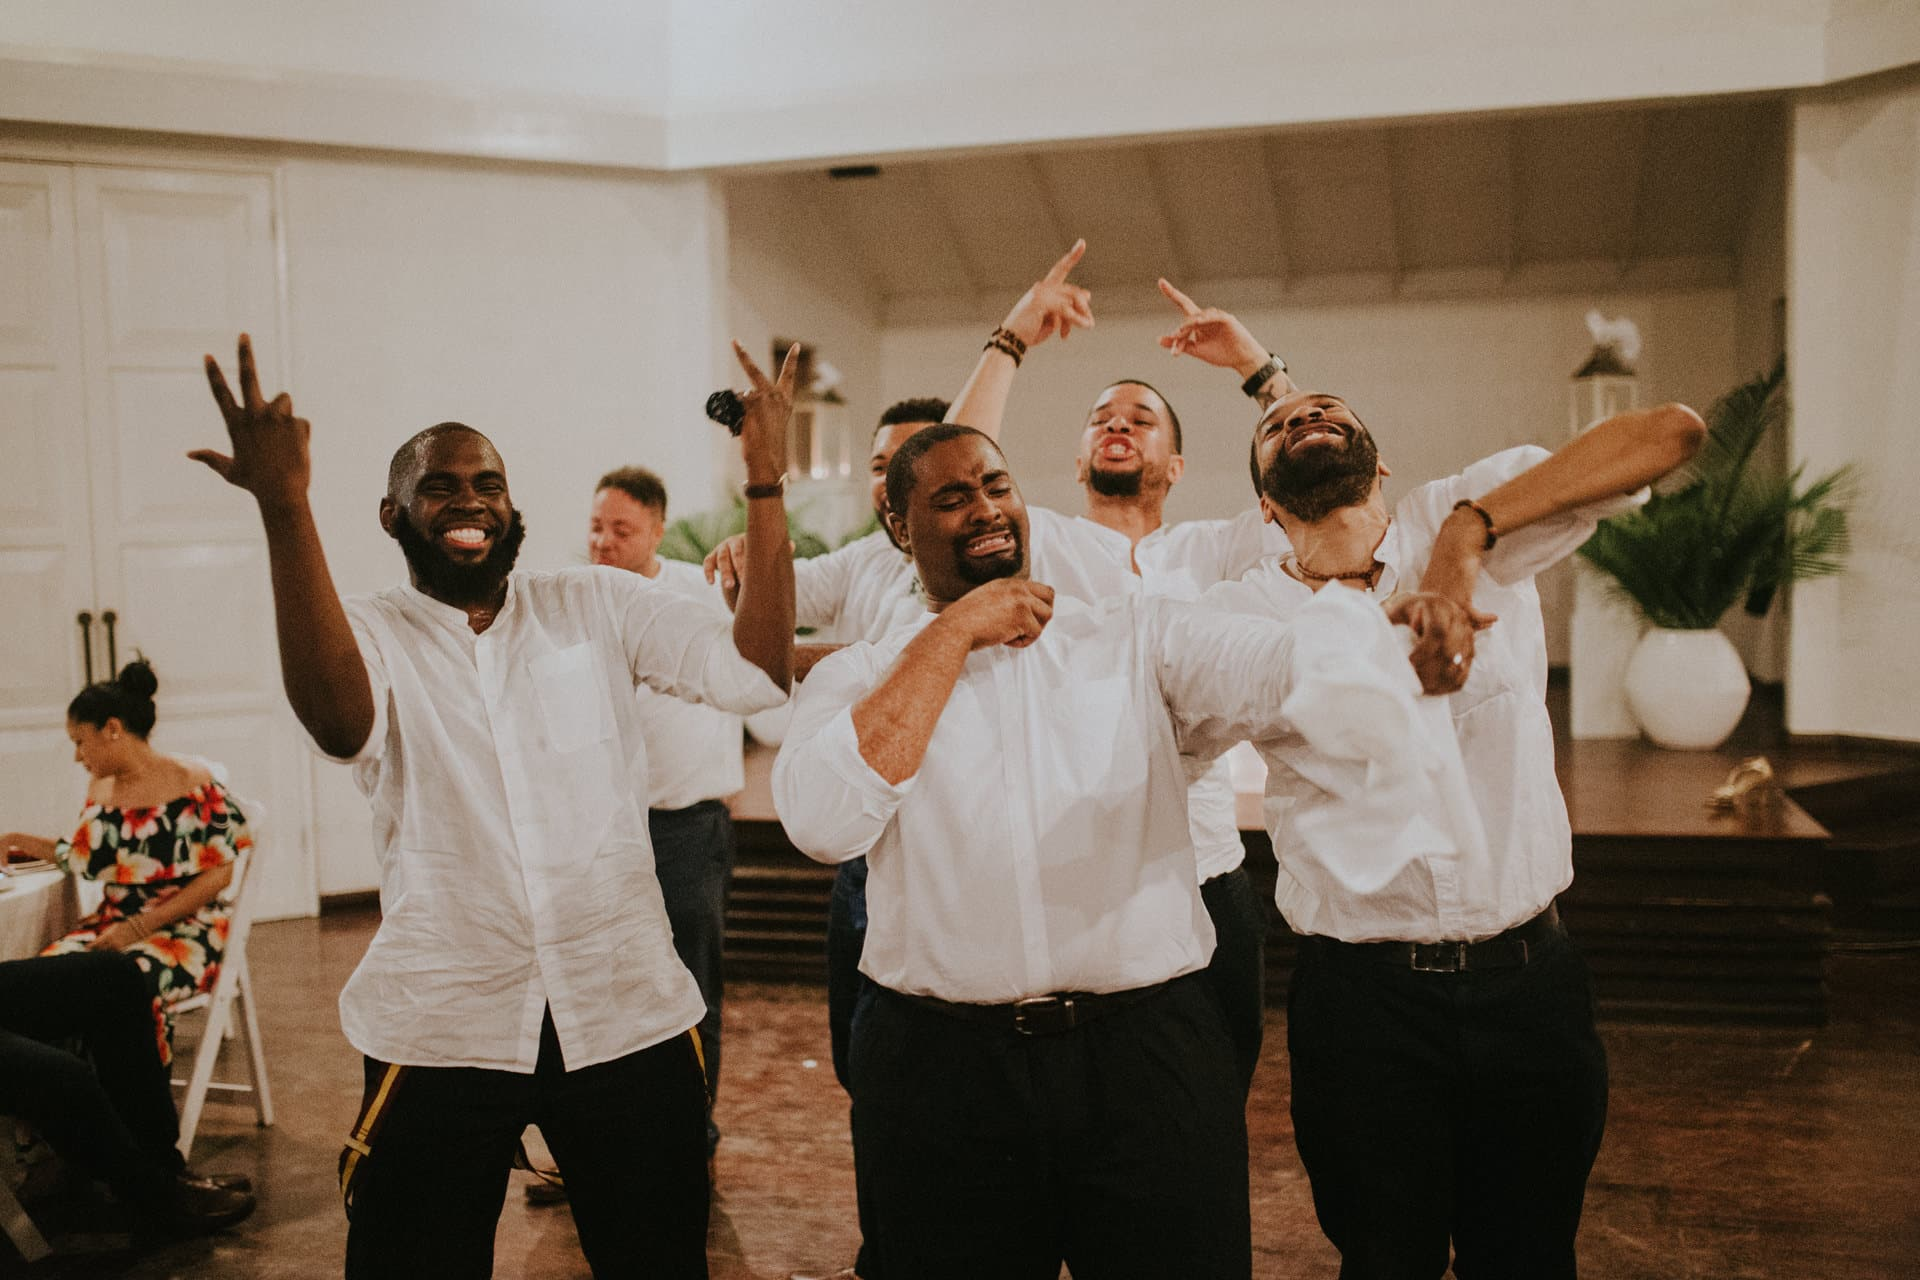 Groomsmen are dancing at the wedding.